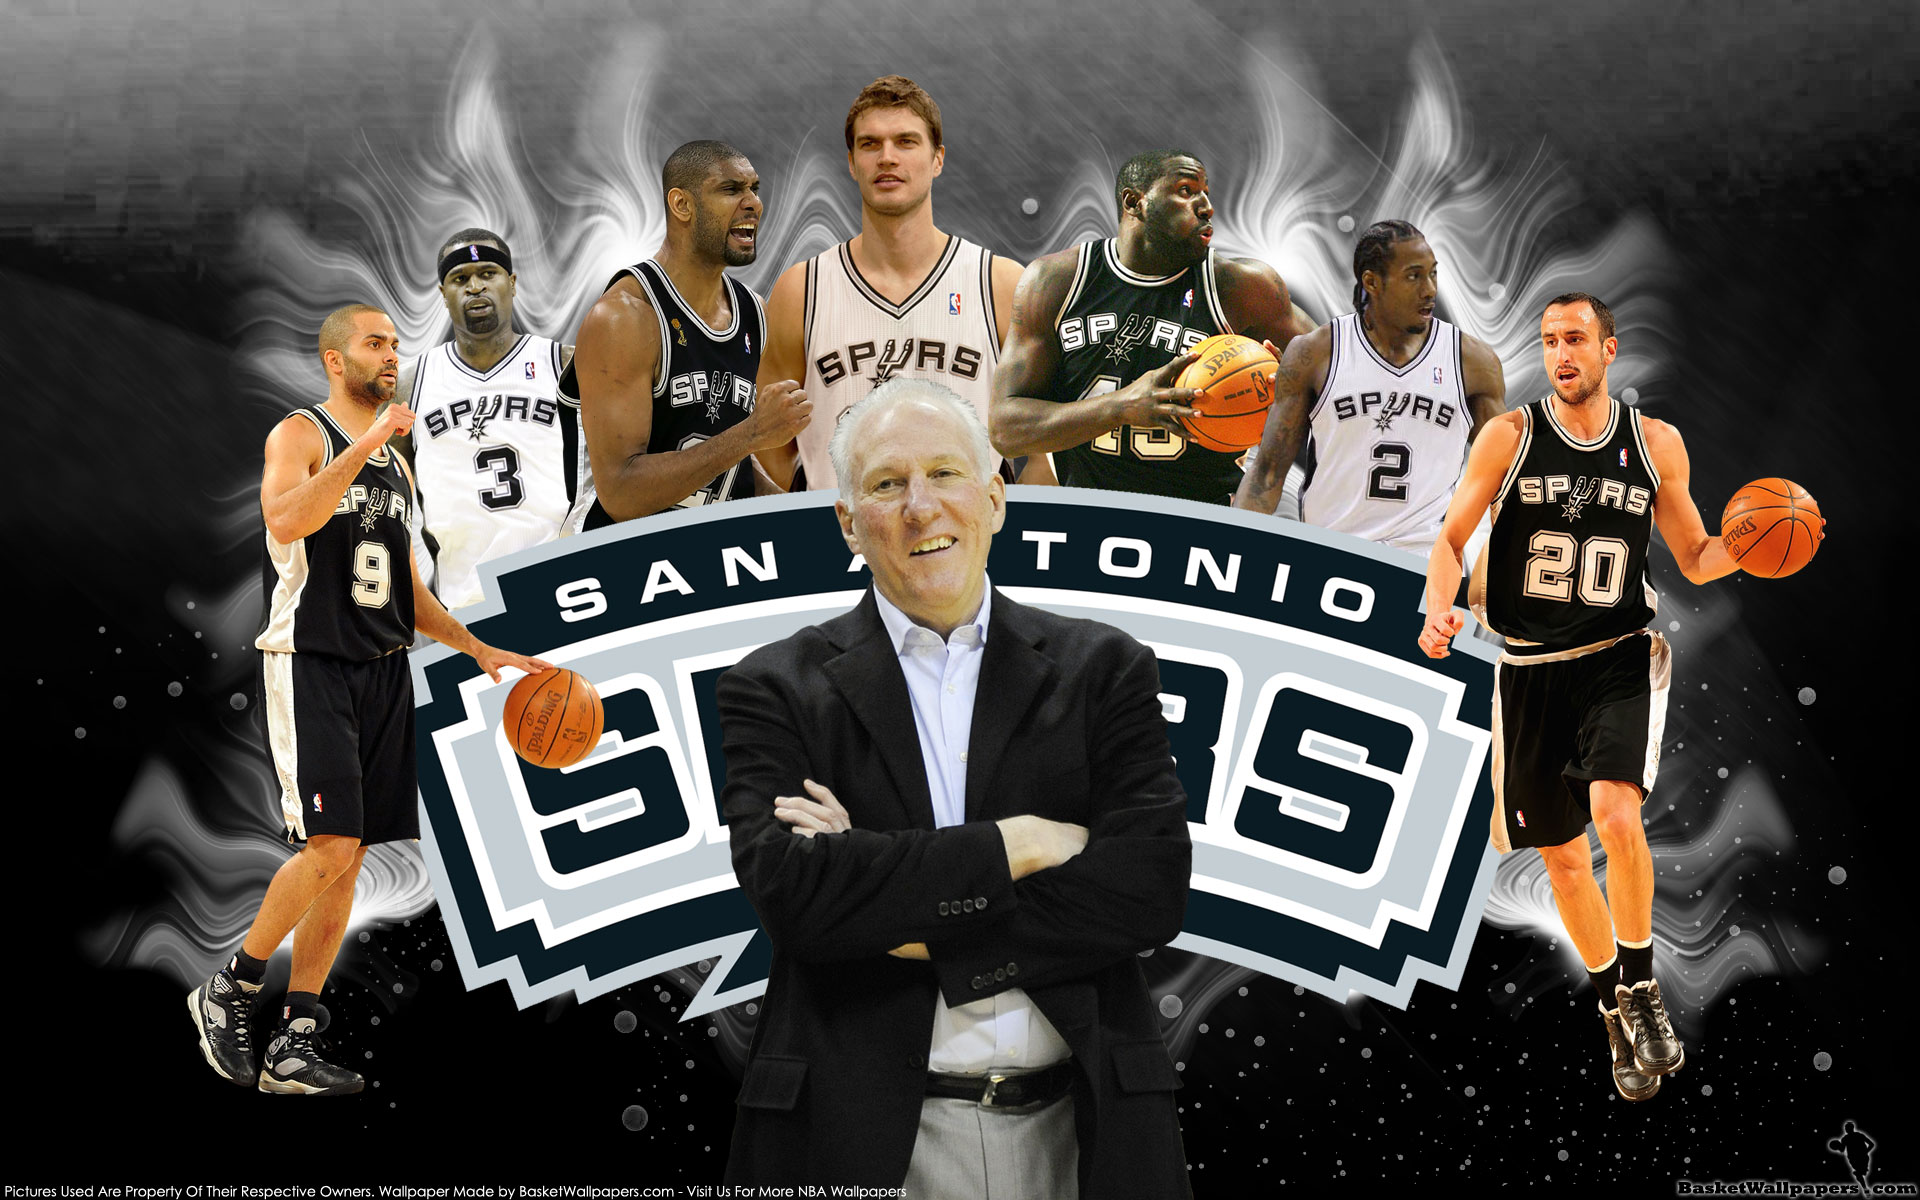 San Antonio Spurs Wallpapers High Resolution and Quality ...